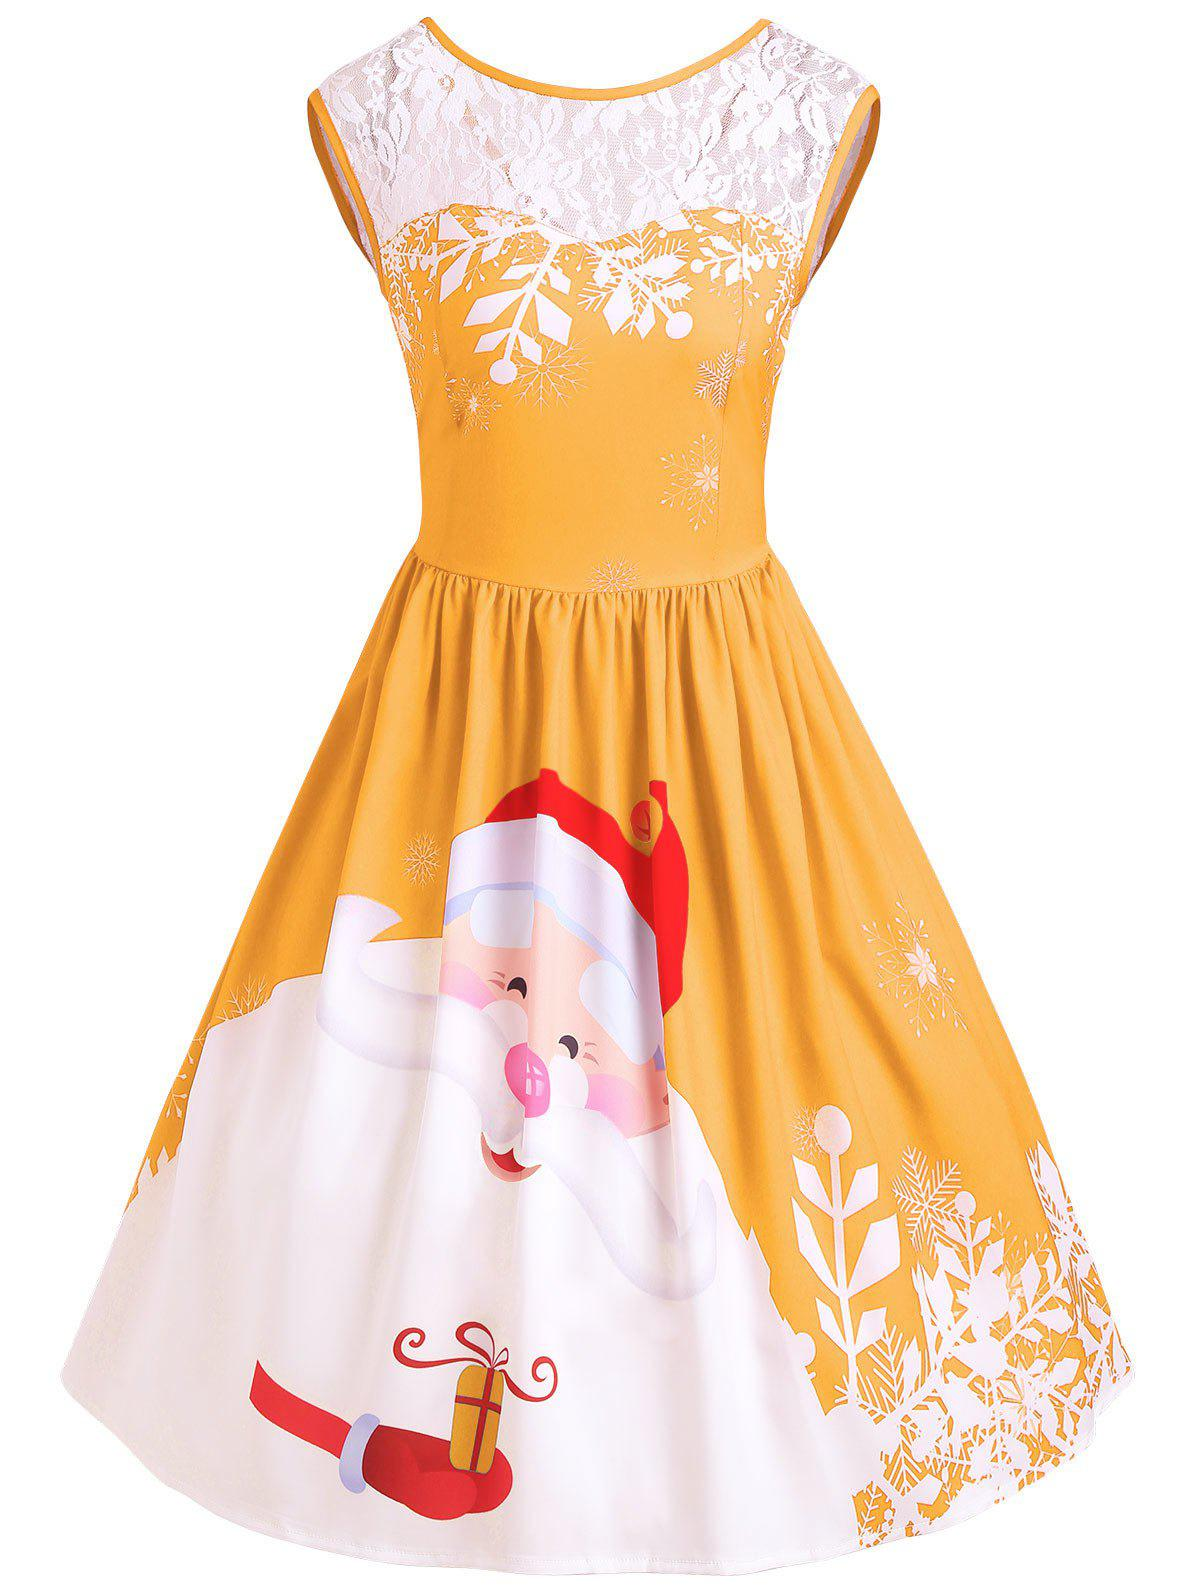 ffc11d317f62 51% OFF ] 2018 Christmas Santa Claus Print Lace Insert Party Dress ...